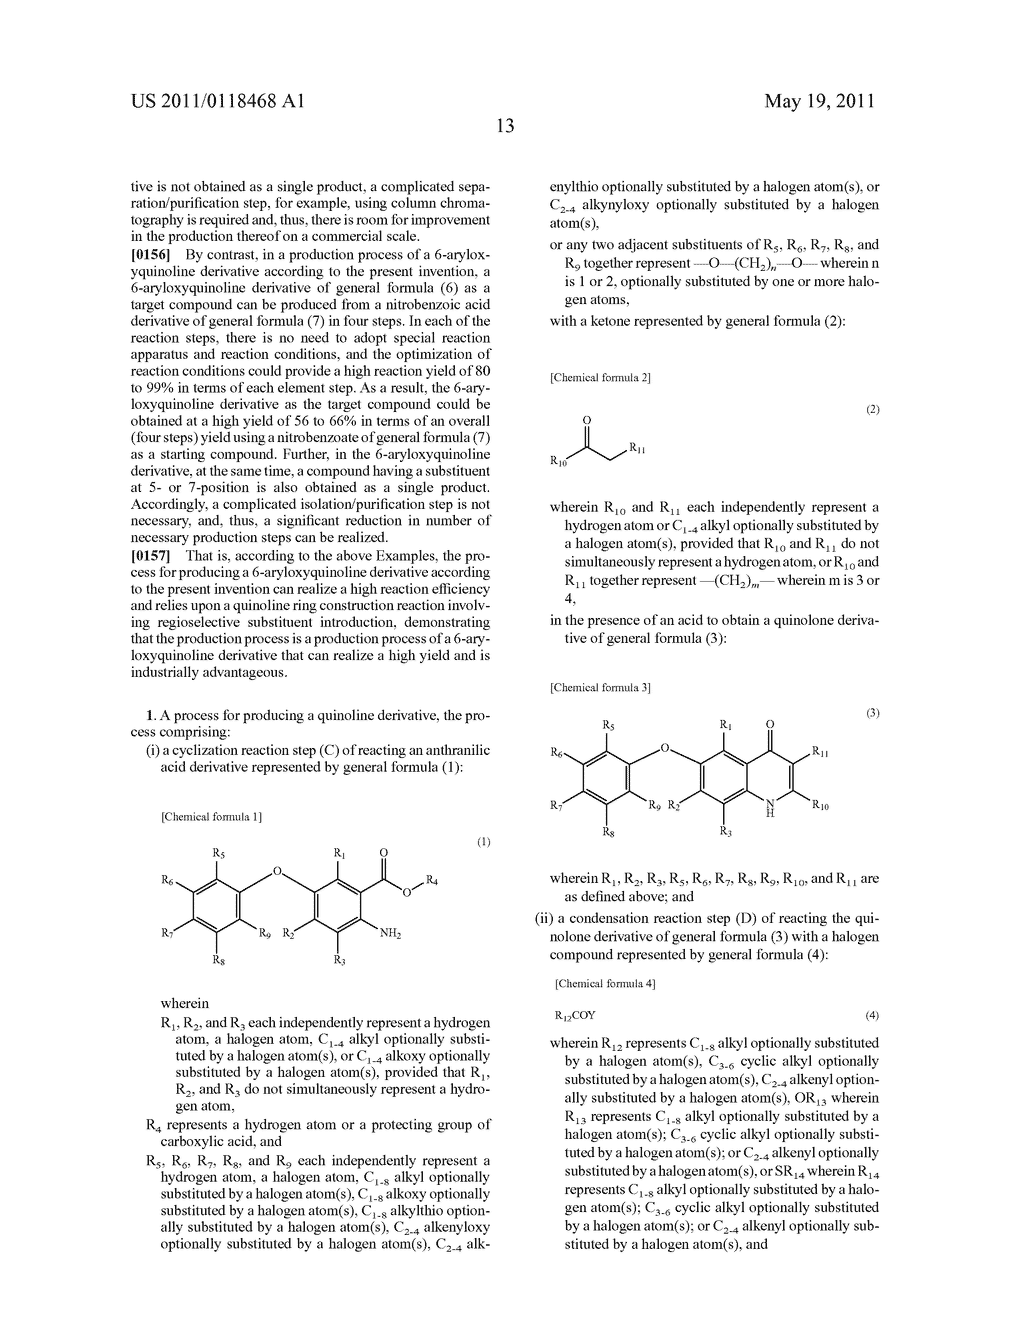 PROCESS FOR PRODUCING 6-ARYLOXYQUINOLINE DERIVATIVE AND INTERMEDIATE THEREFOR - diagram, schematic, and image 14